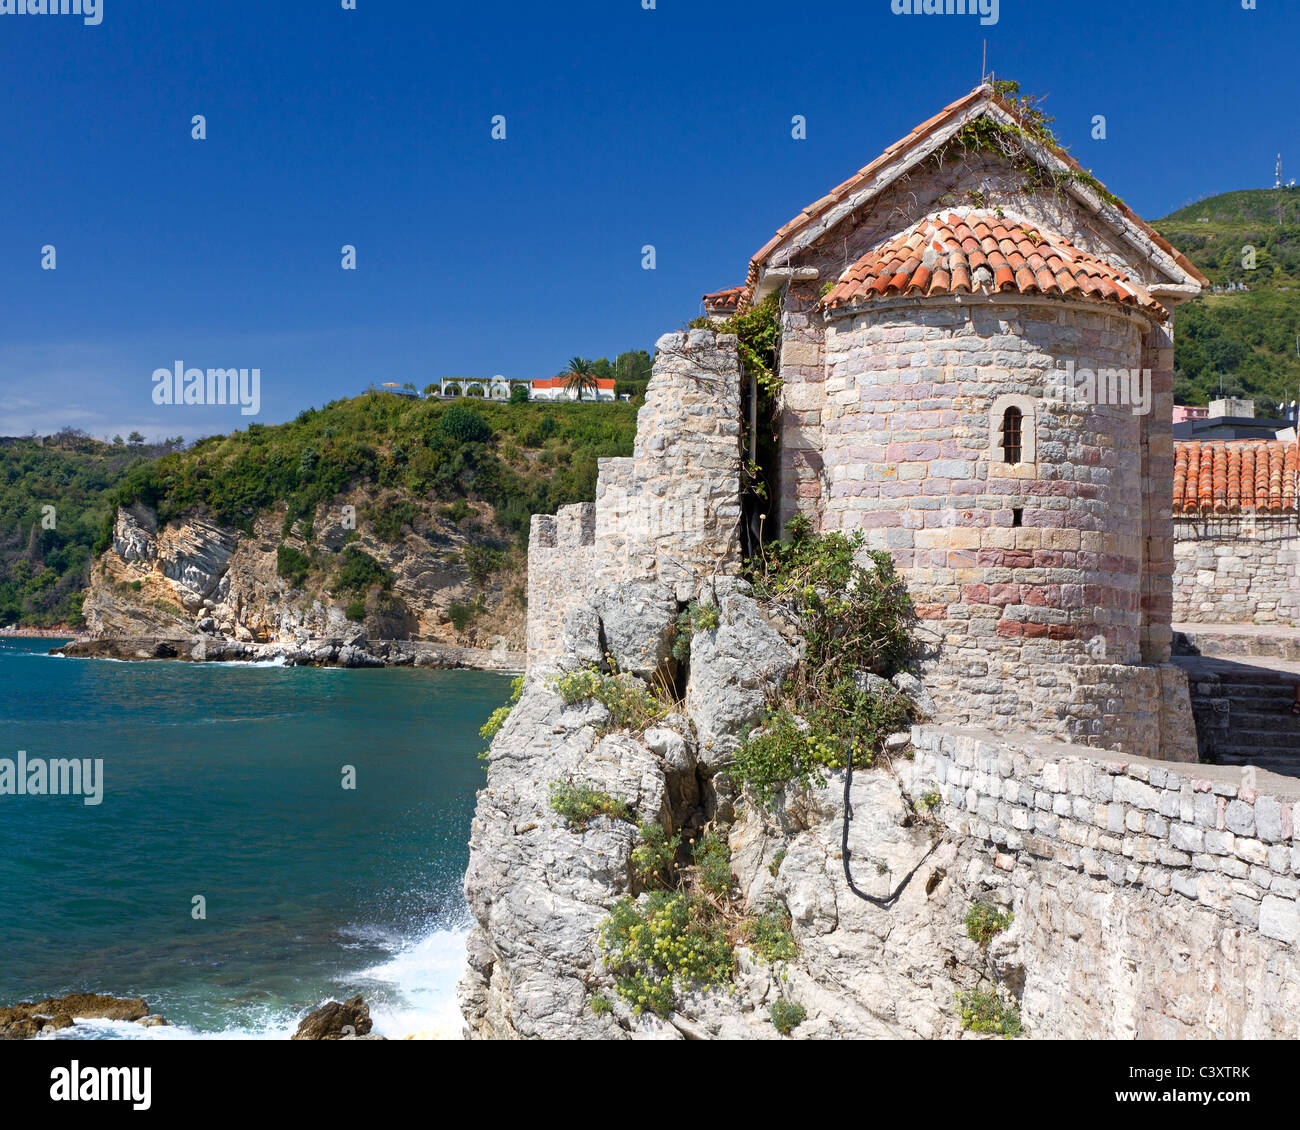 historic watch tower built of rough stone on a old city wall overlooking the sea in Montenegro - Stock Image